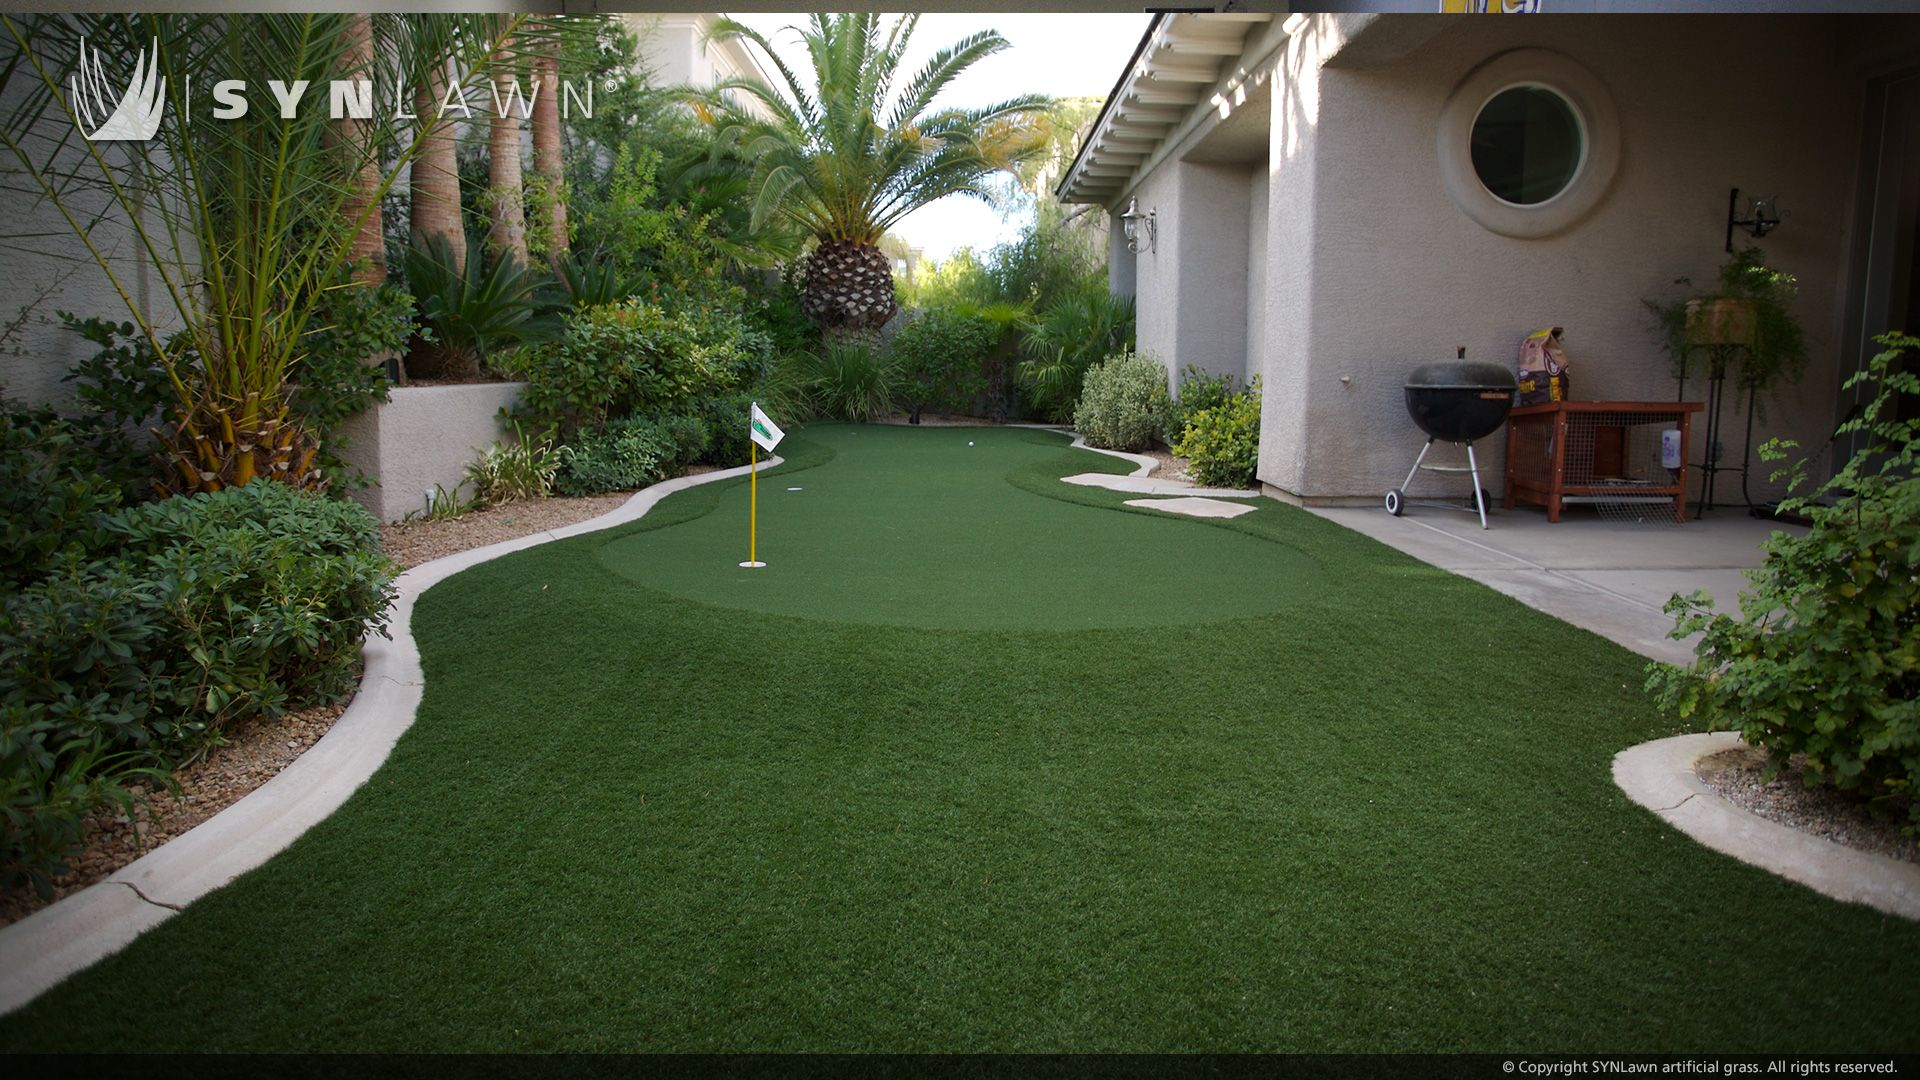 SYNLawn custom putting greens can be created in any area ...